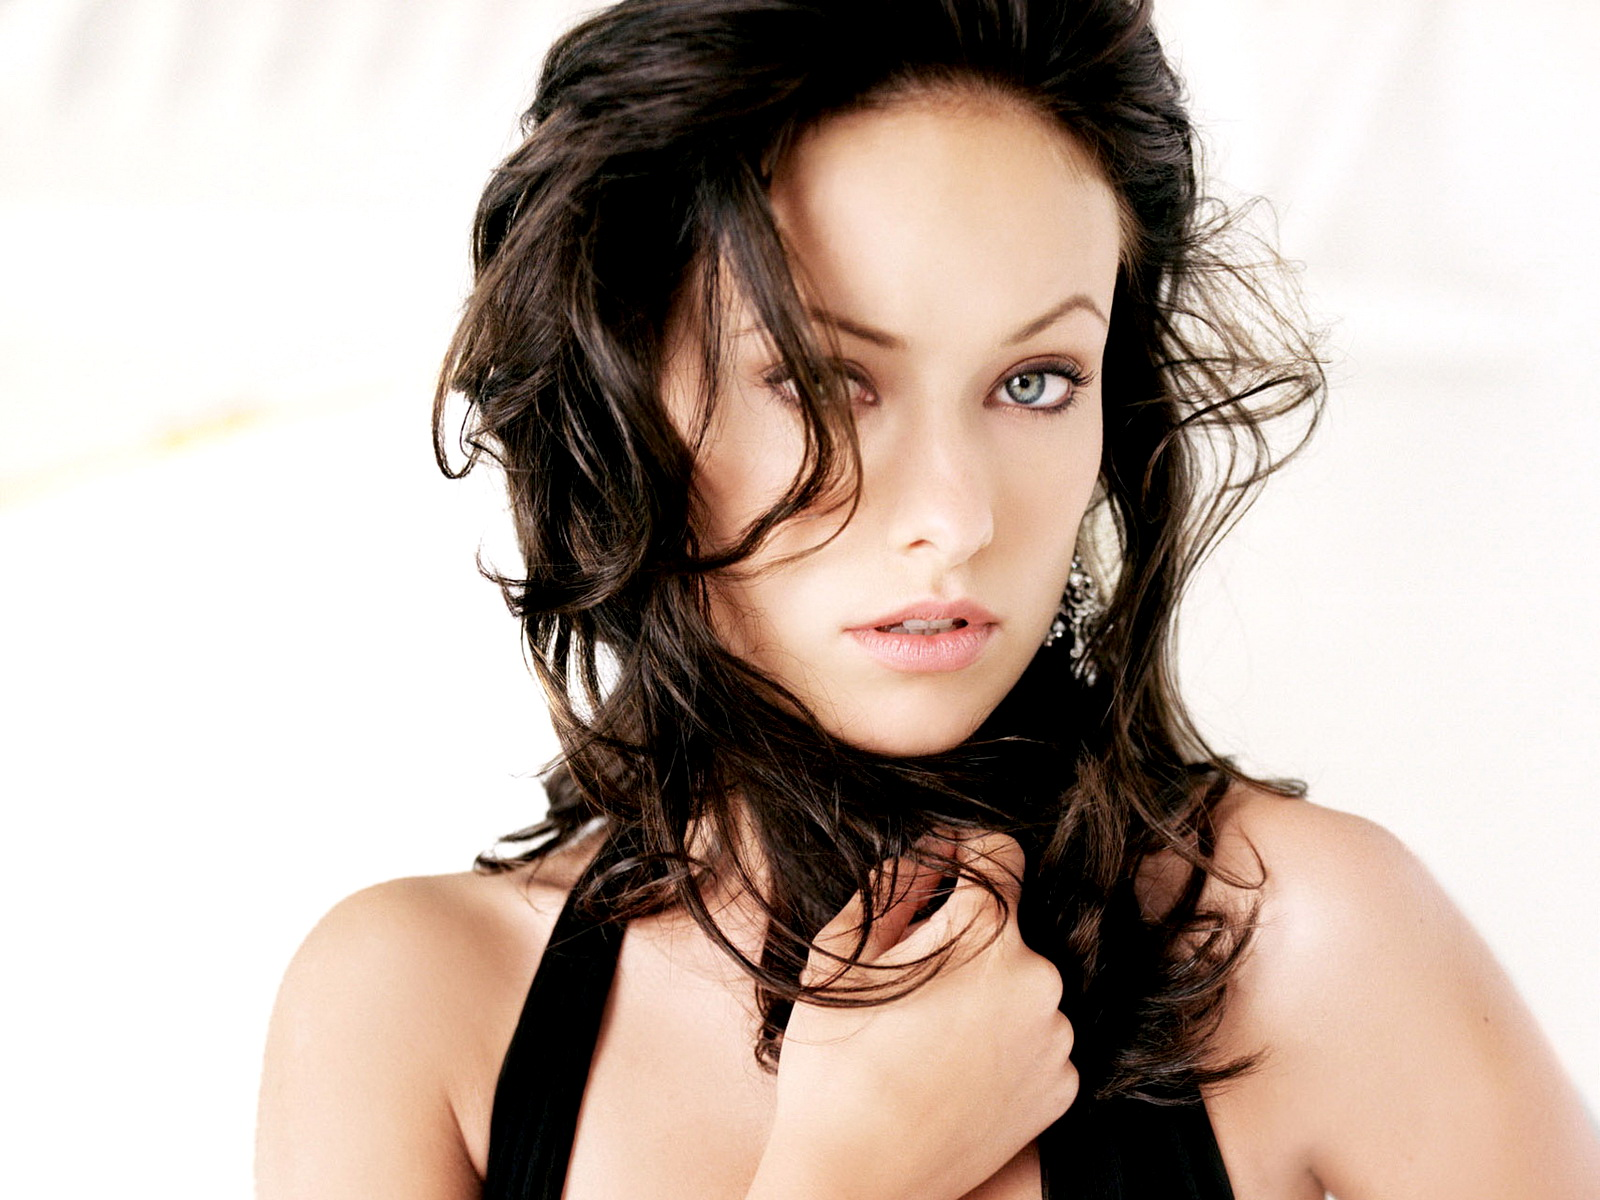 Olivia Wilde might play notorious porn star | Quickflix® DVD & Movie Blog